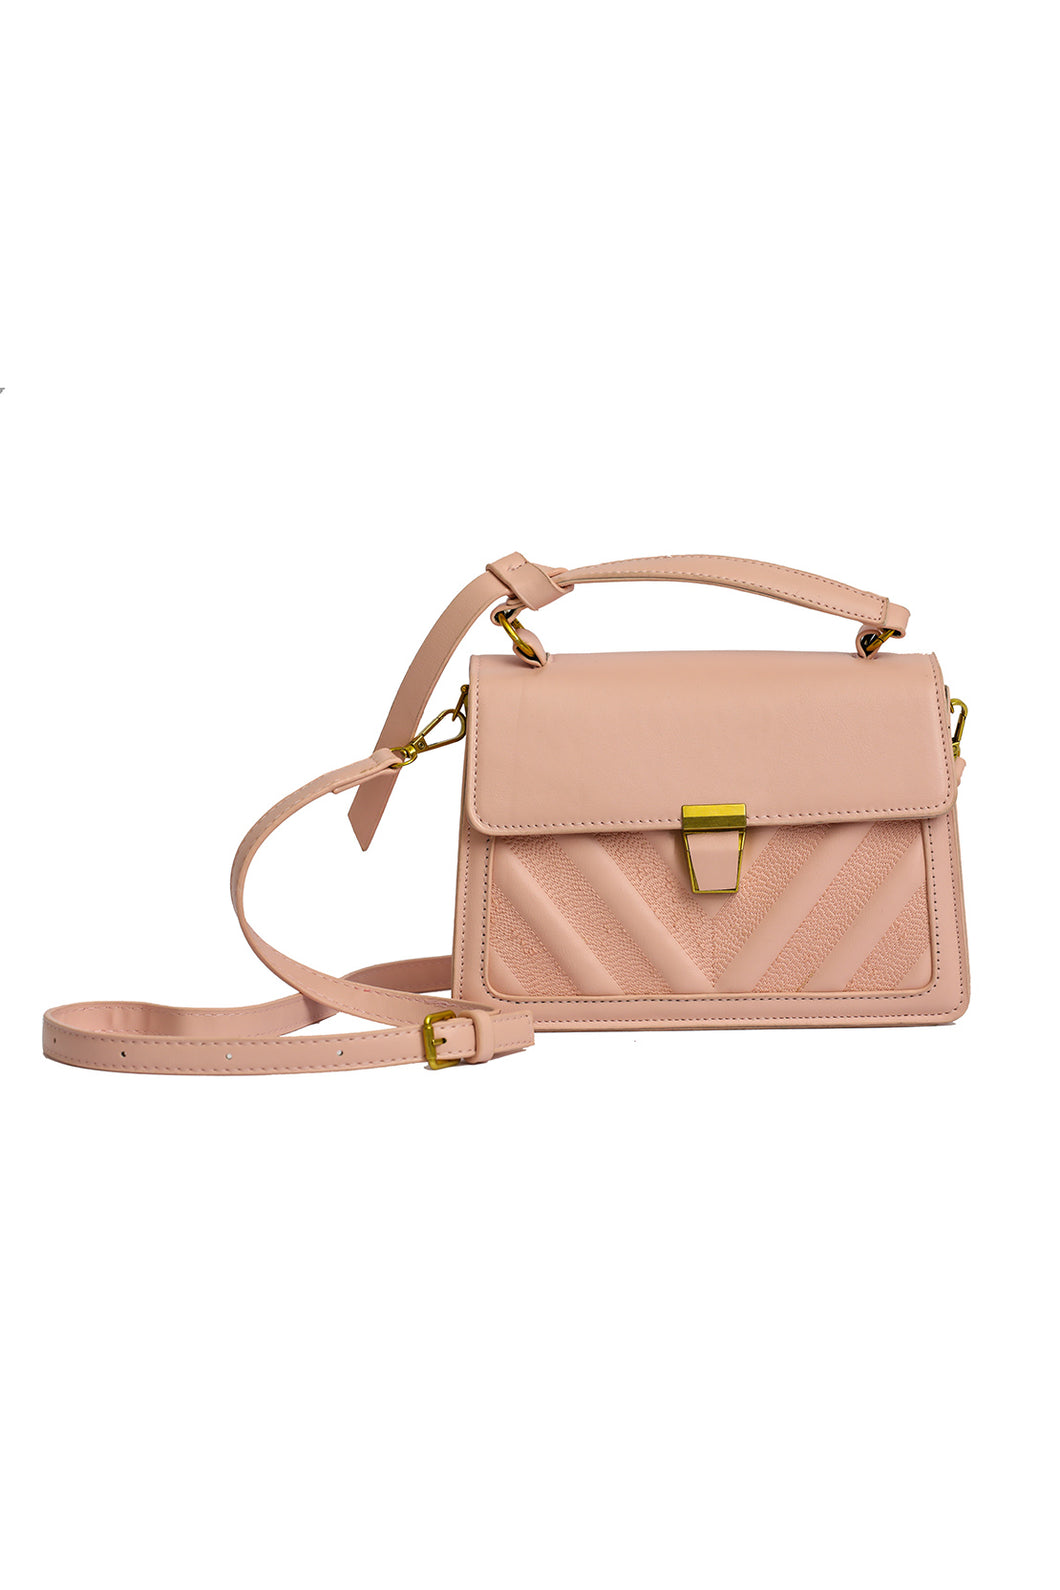 Top Handle Bag - Pink